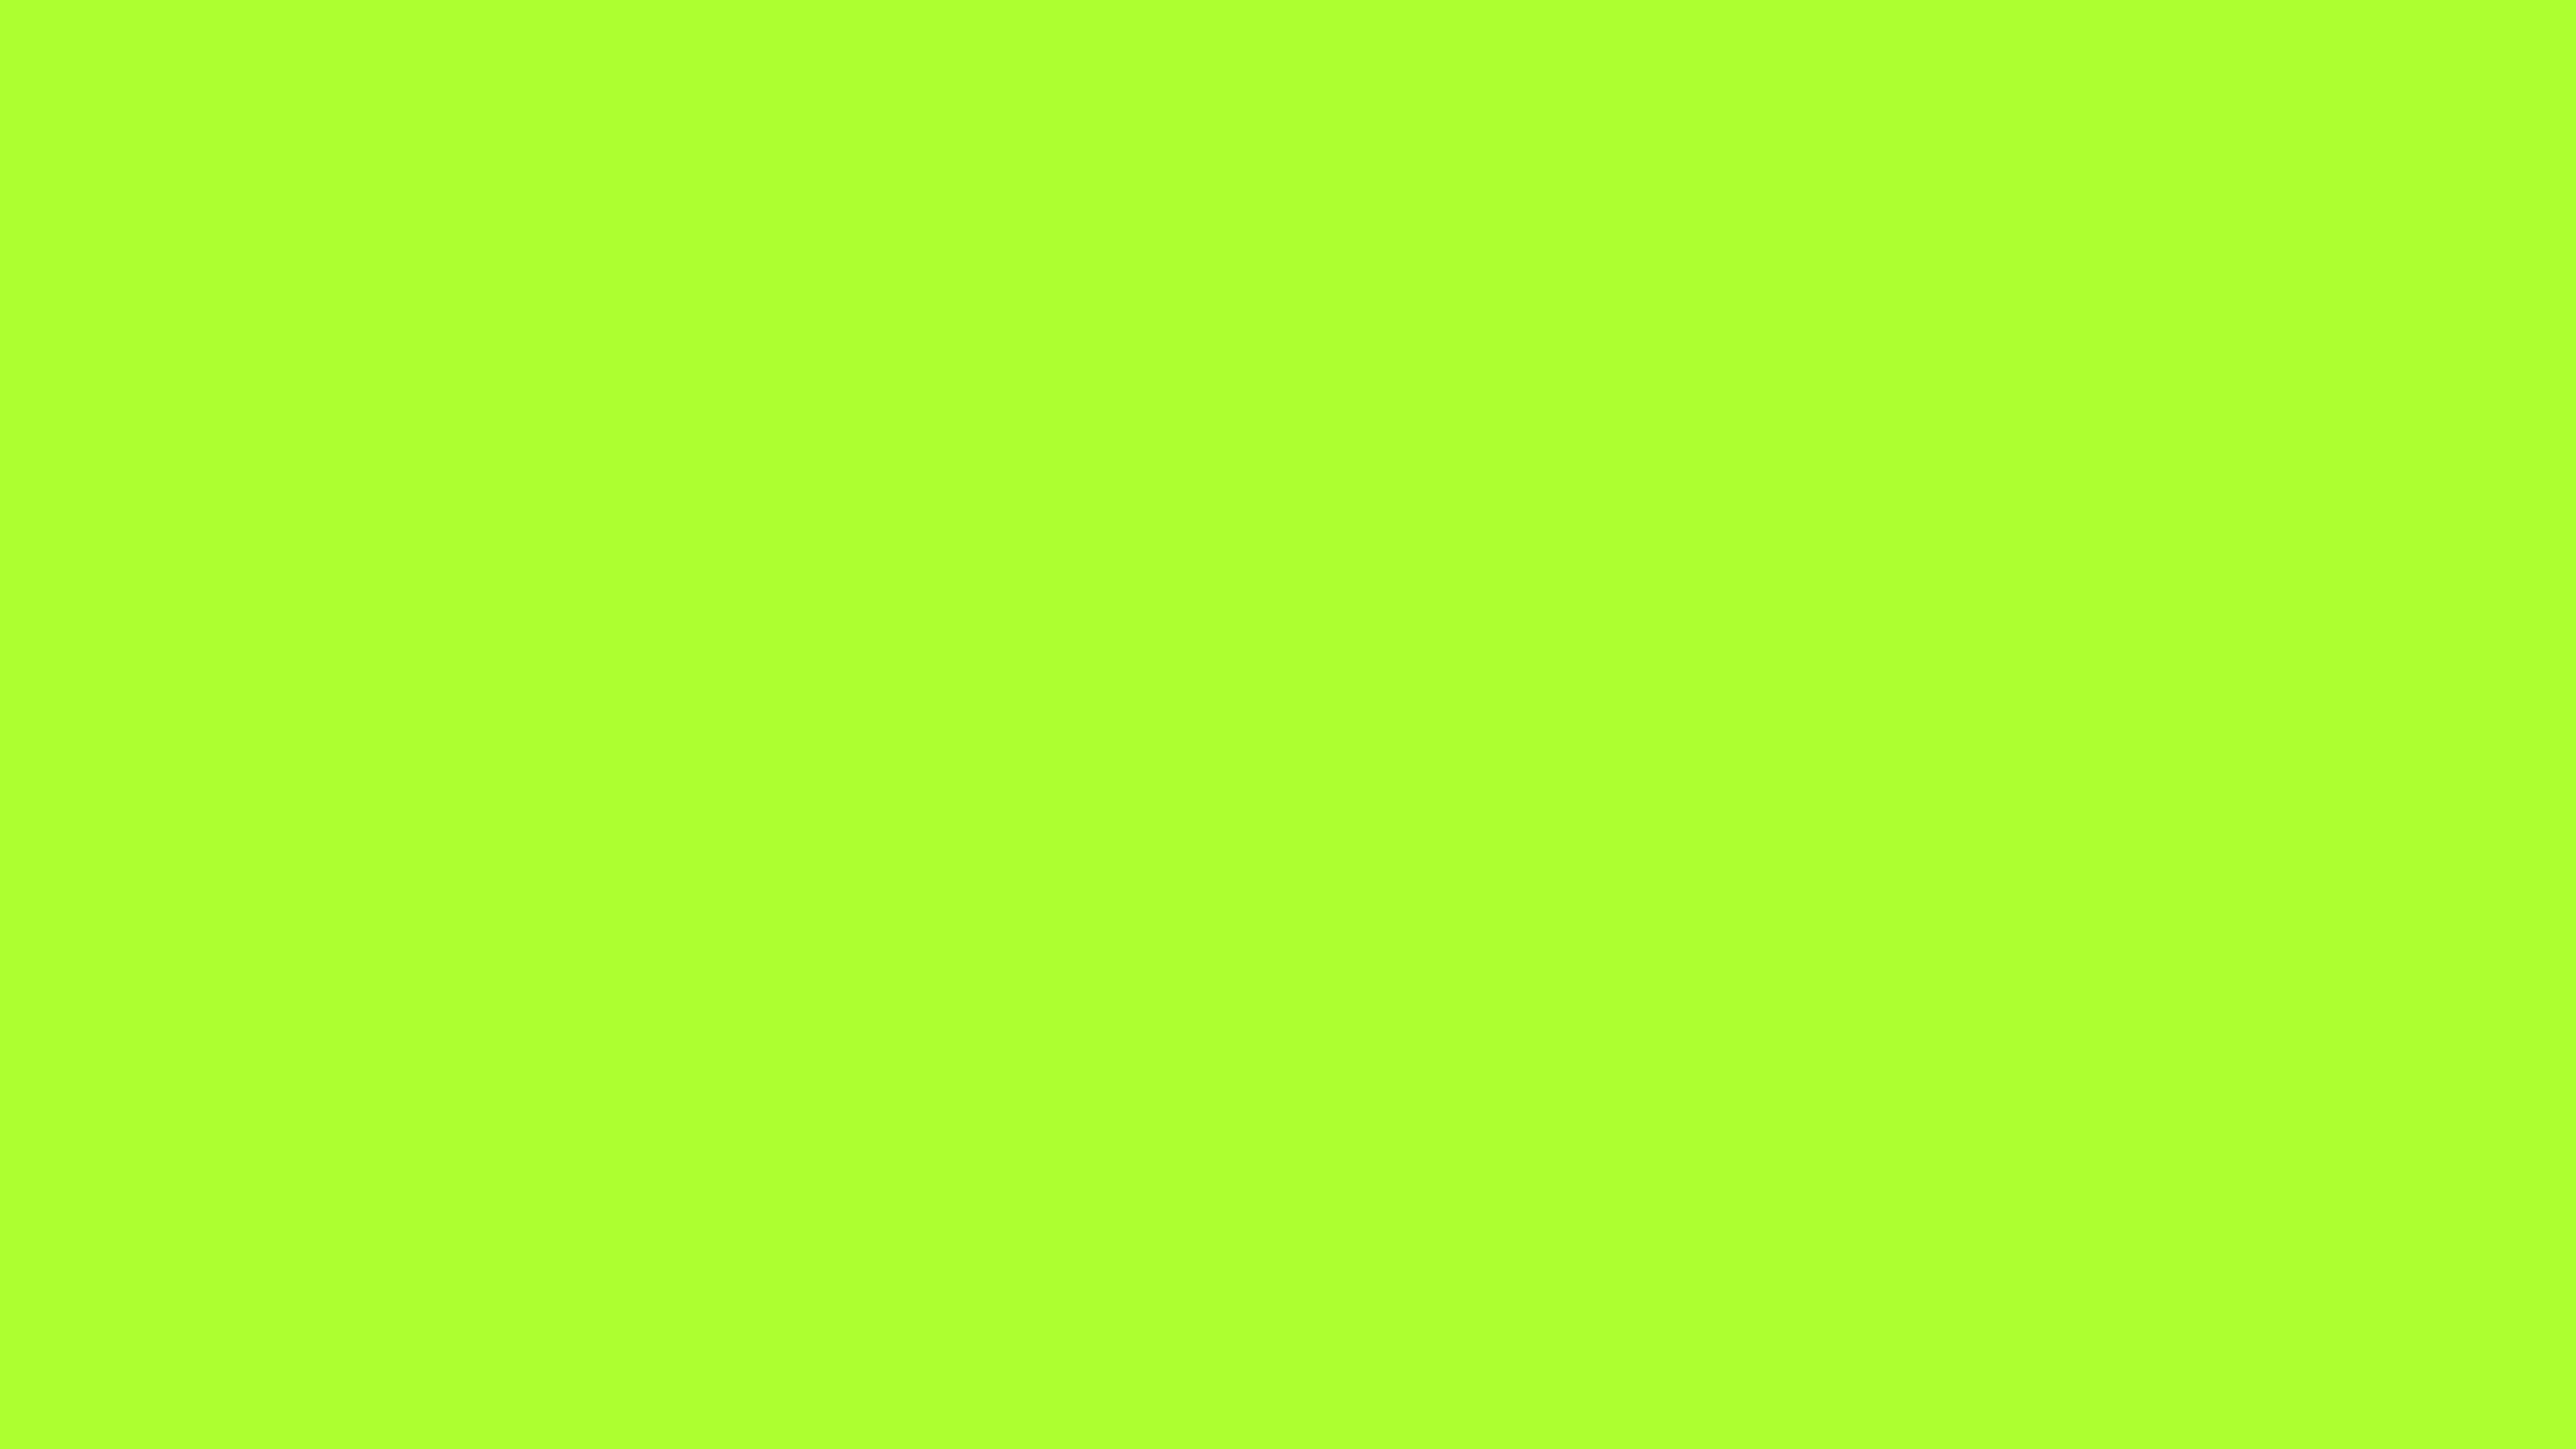 5120x2880 Green-yellow Solid Color Background